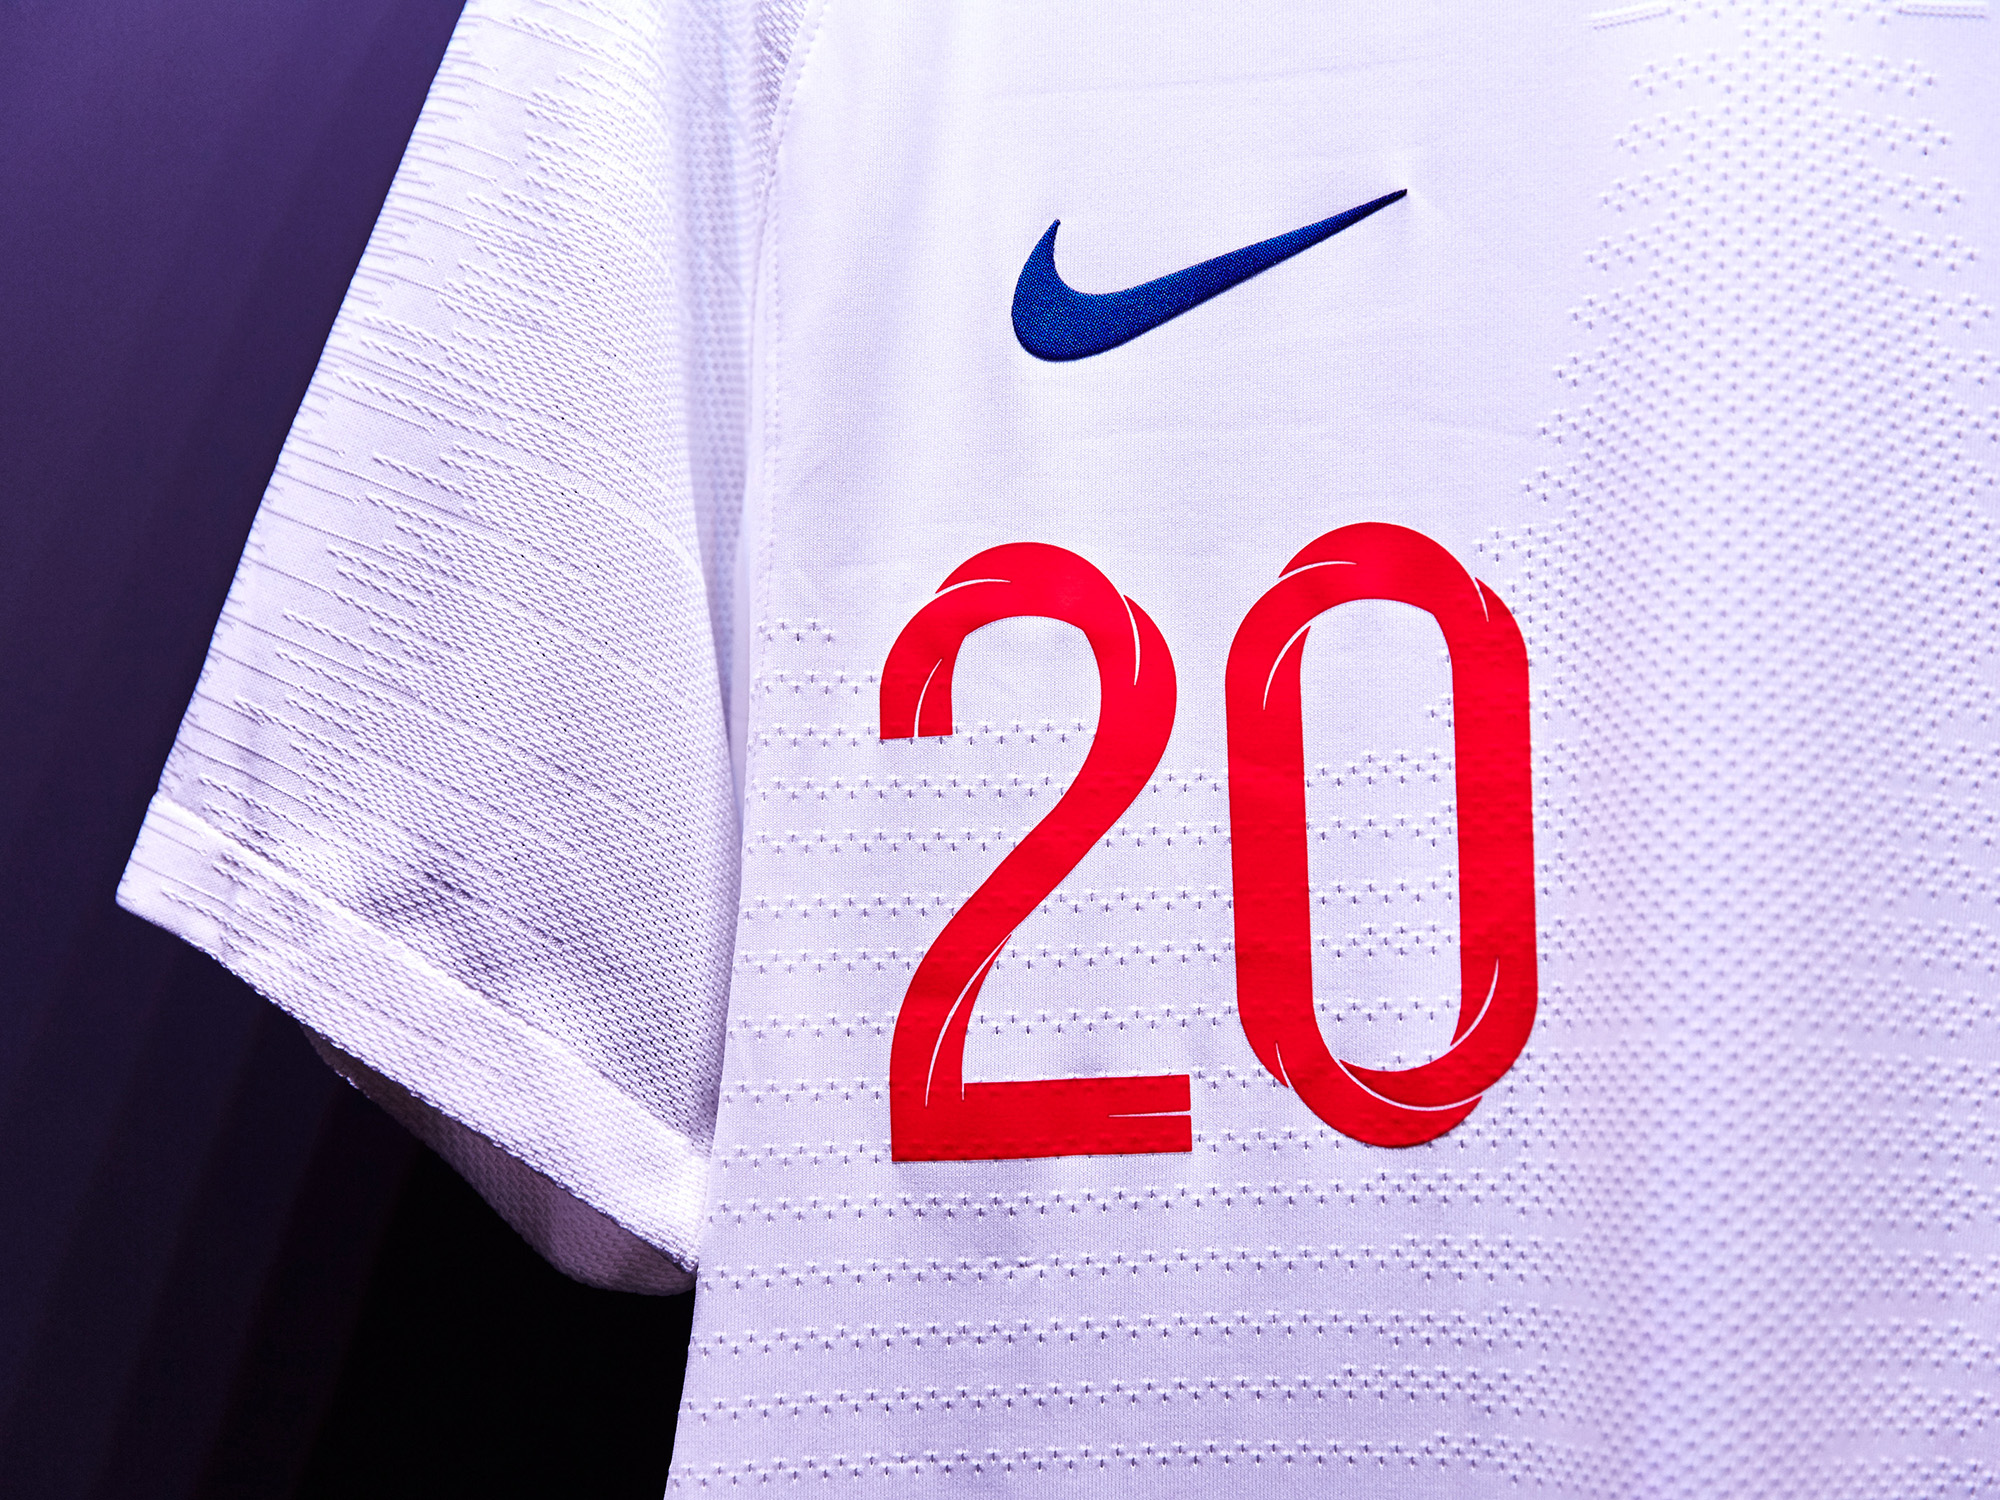 Nike-News-Football-Soccer-England-National-Team-Kit-4_77378